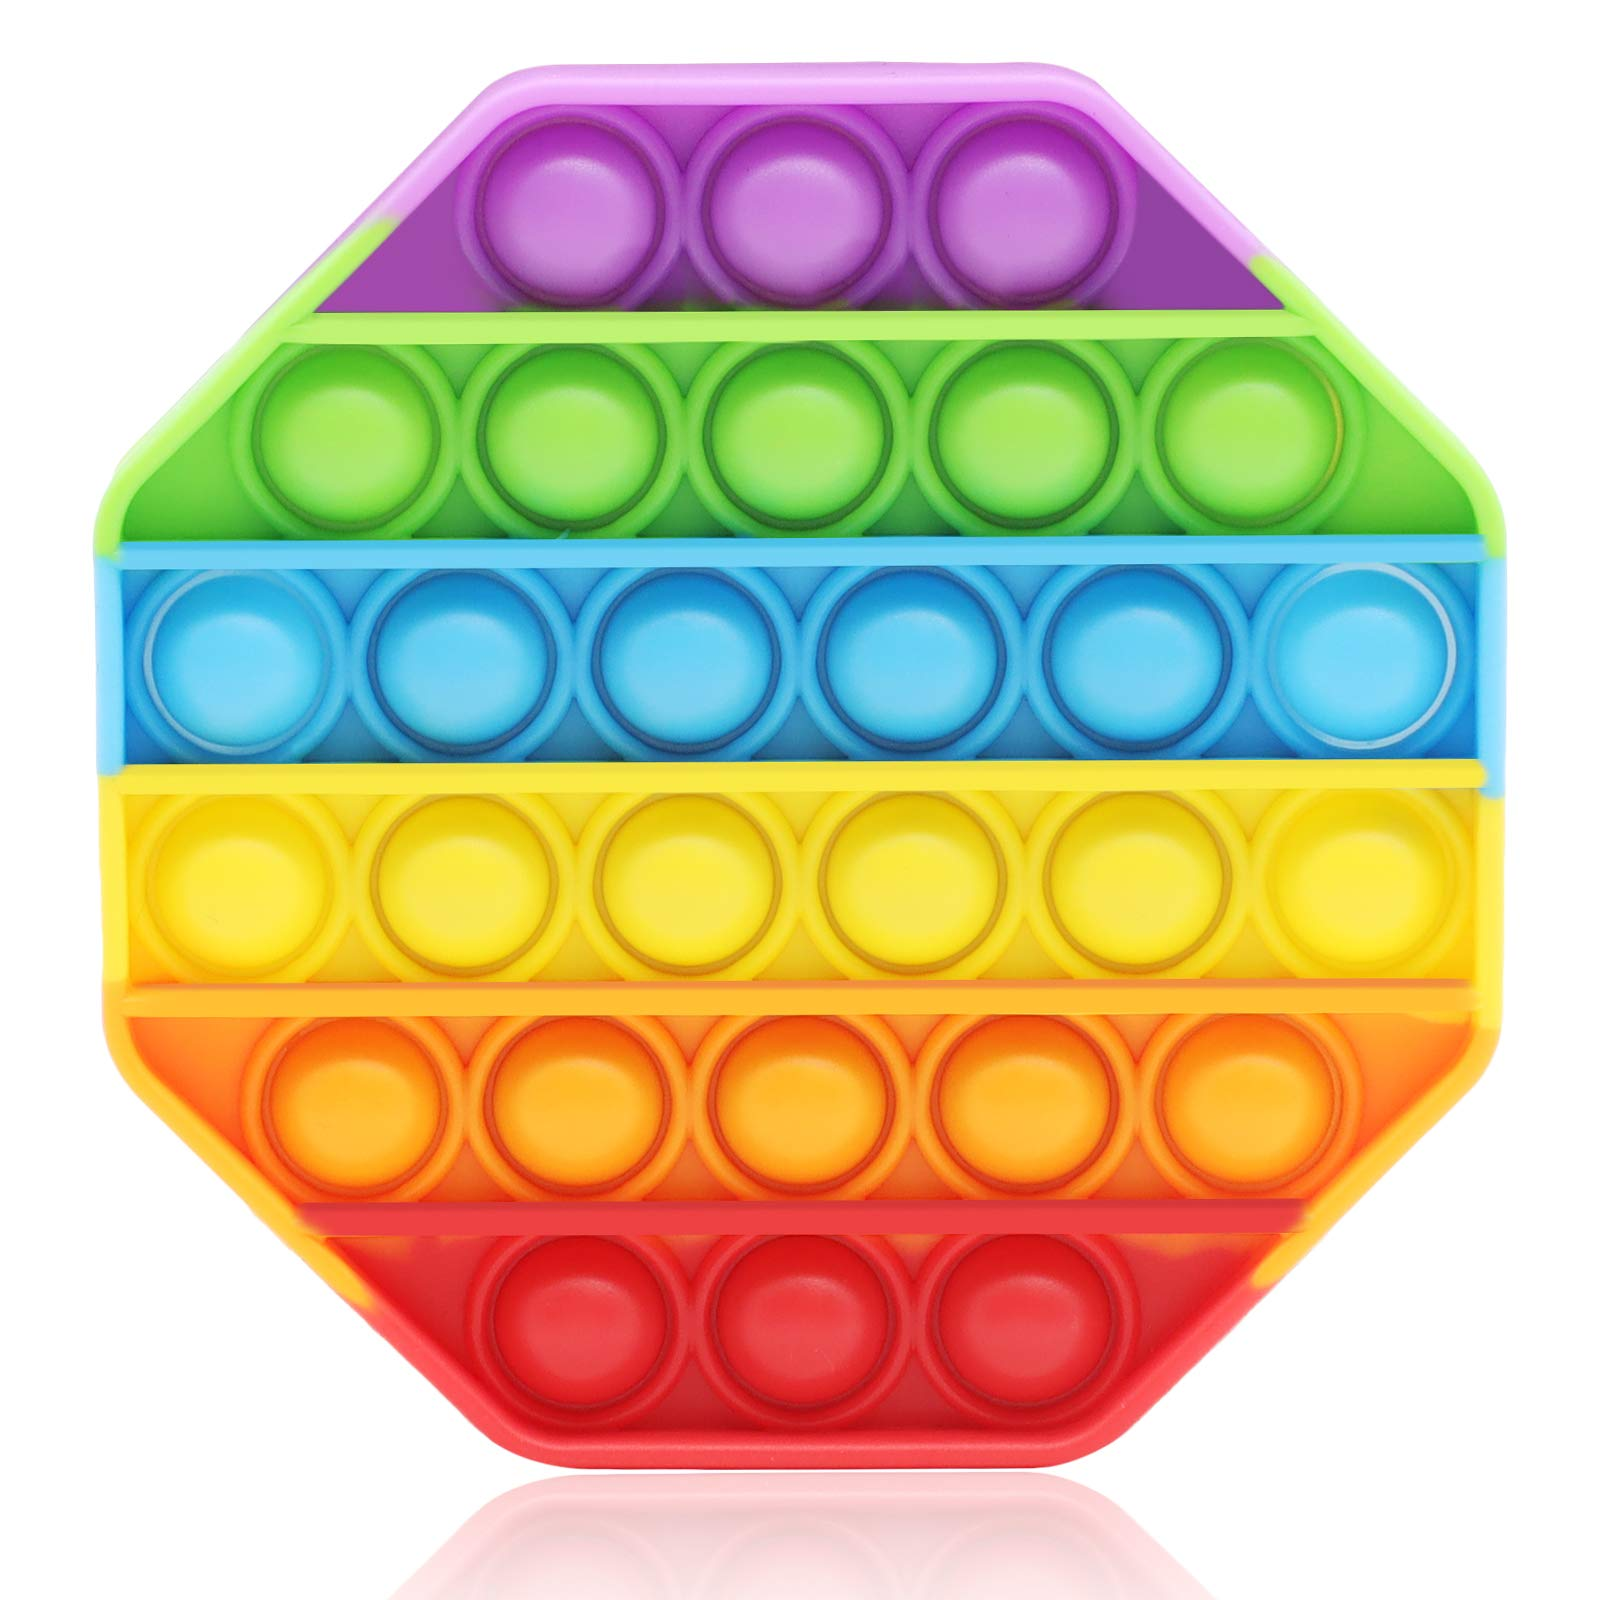 Fidget Toy Cheap Push Pop Fidget It Toy, Durable Squeeze Sensory Toy for Training Logical ThinkingSoft Silicone for Anxiety Stress (Rainbow-Octagon)